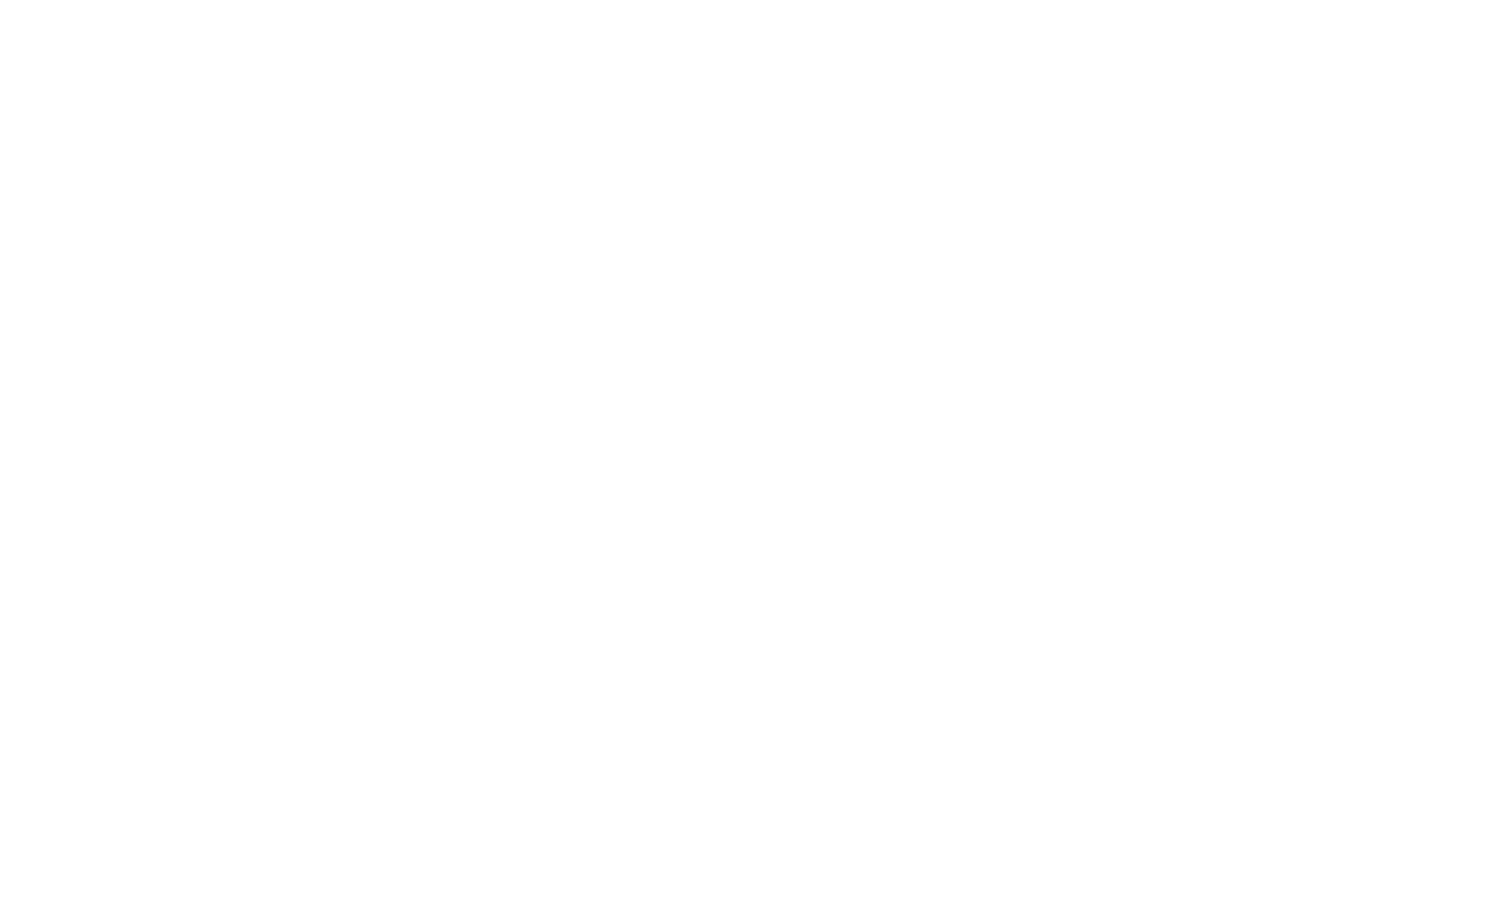 Erica Torres Photography